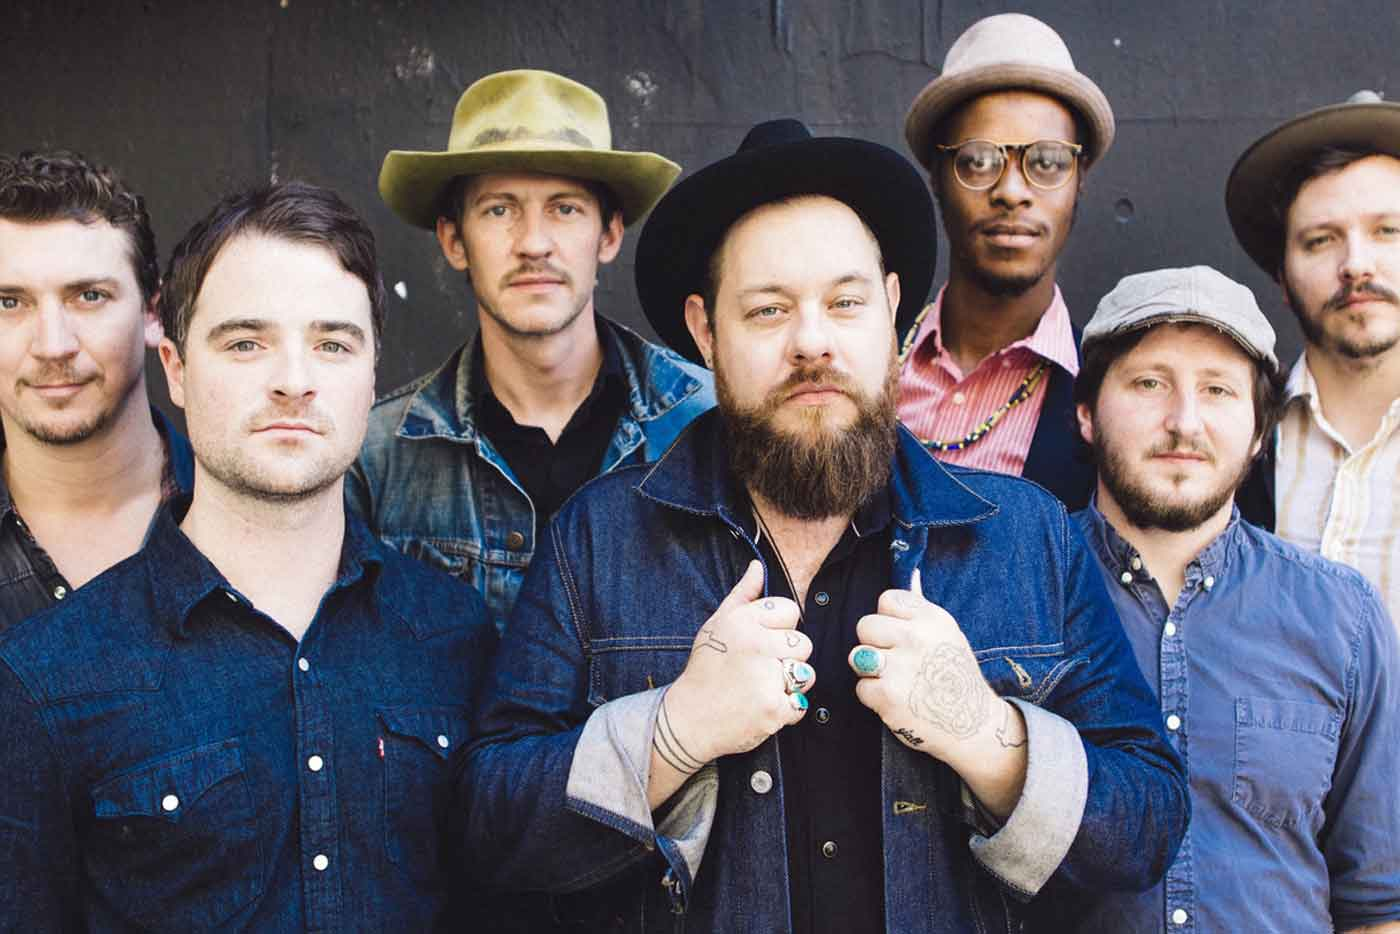 Nataniel Rateliff & The Night Sweats, sudar soul